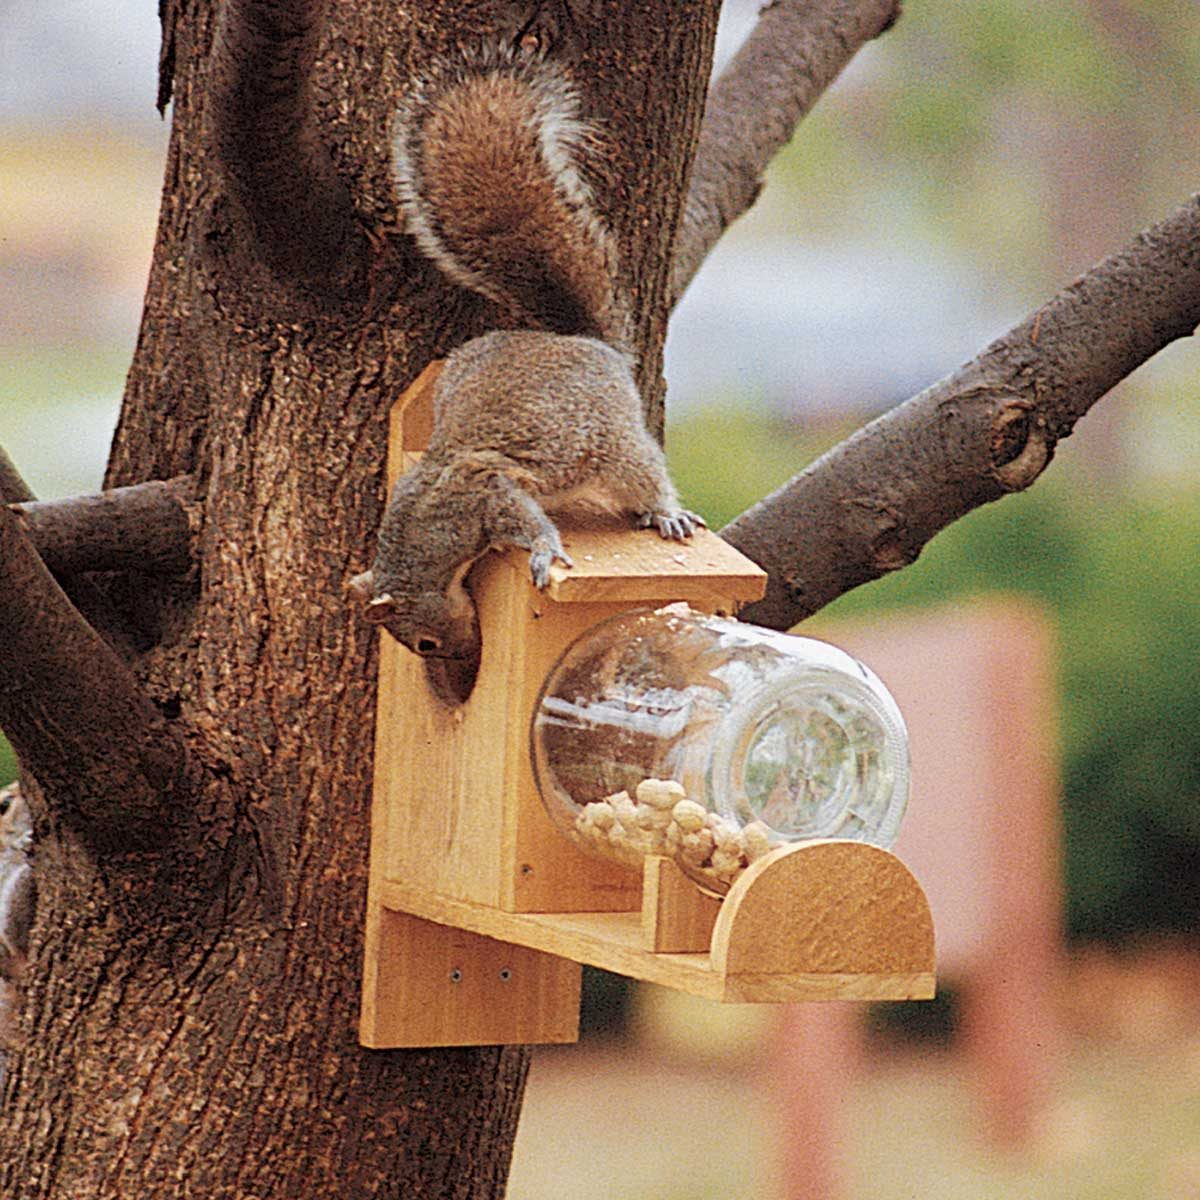 entertaining-squirrel-feeder-outside